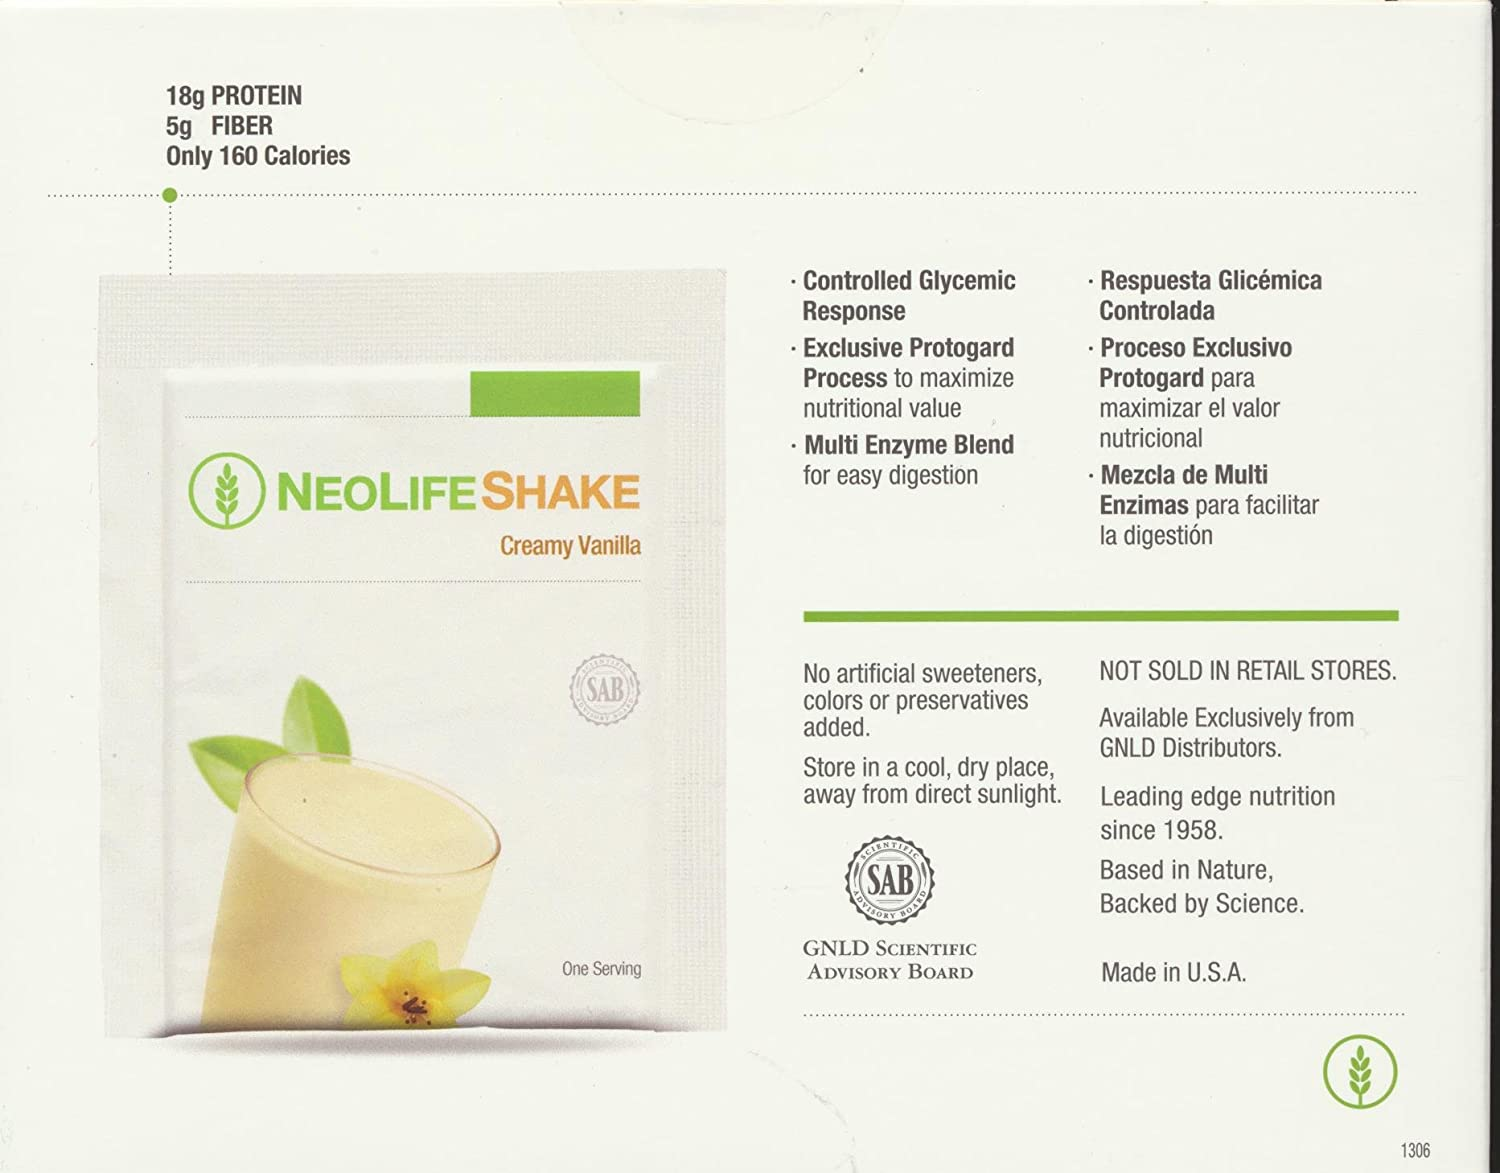 Amazon.com: Neolifeshake Creamy Vanilla Box of 15 Packets ...